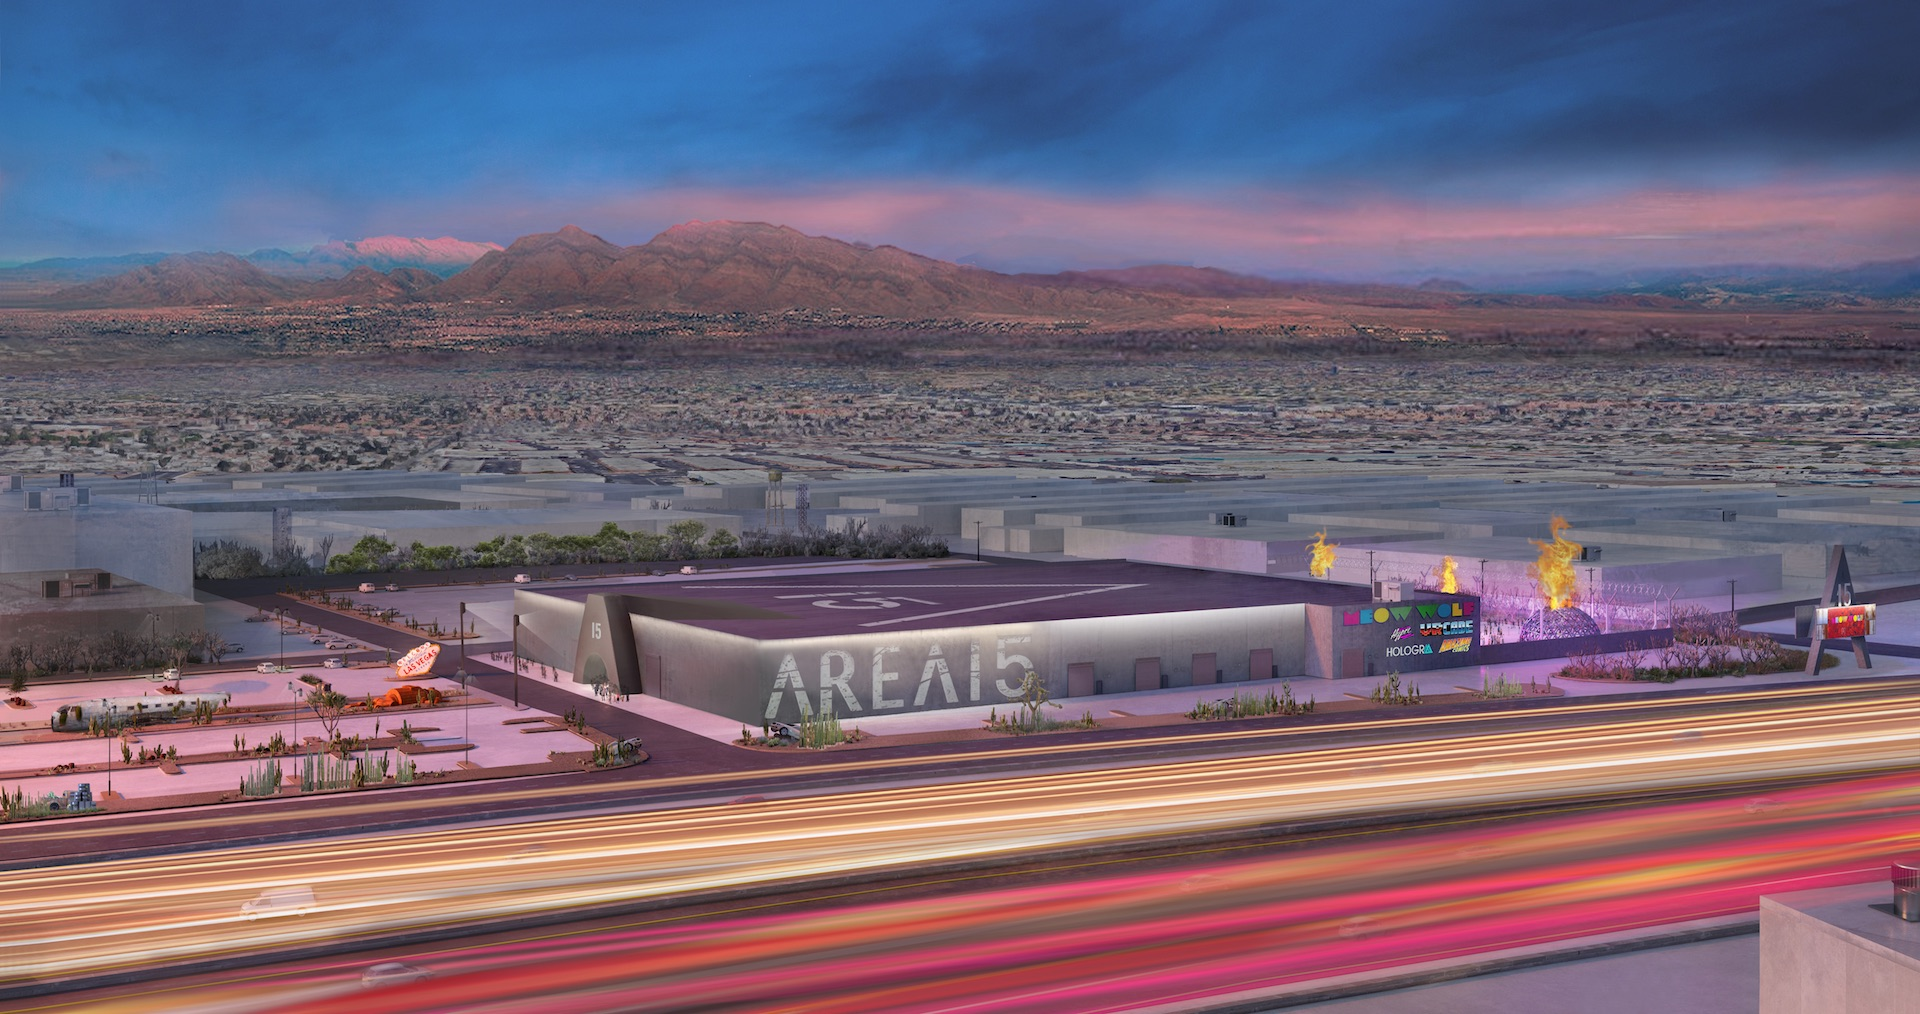 46215918804 a0bb690b40 o After Decades of Cold Decks Developers Are Betting Big Again on Las Vegas